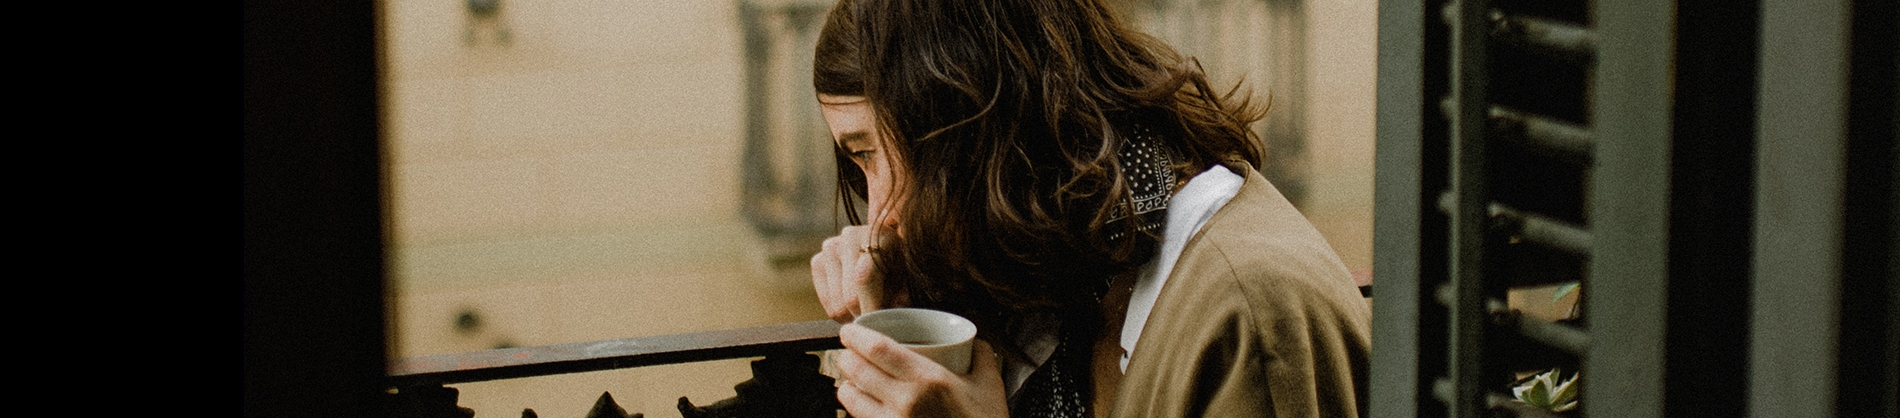 A women sat with her head resting on her hand, looking over a balcony with a mug of coffee in her hand